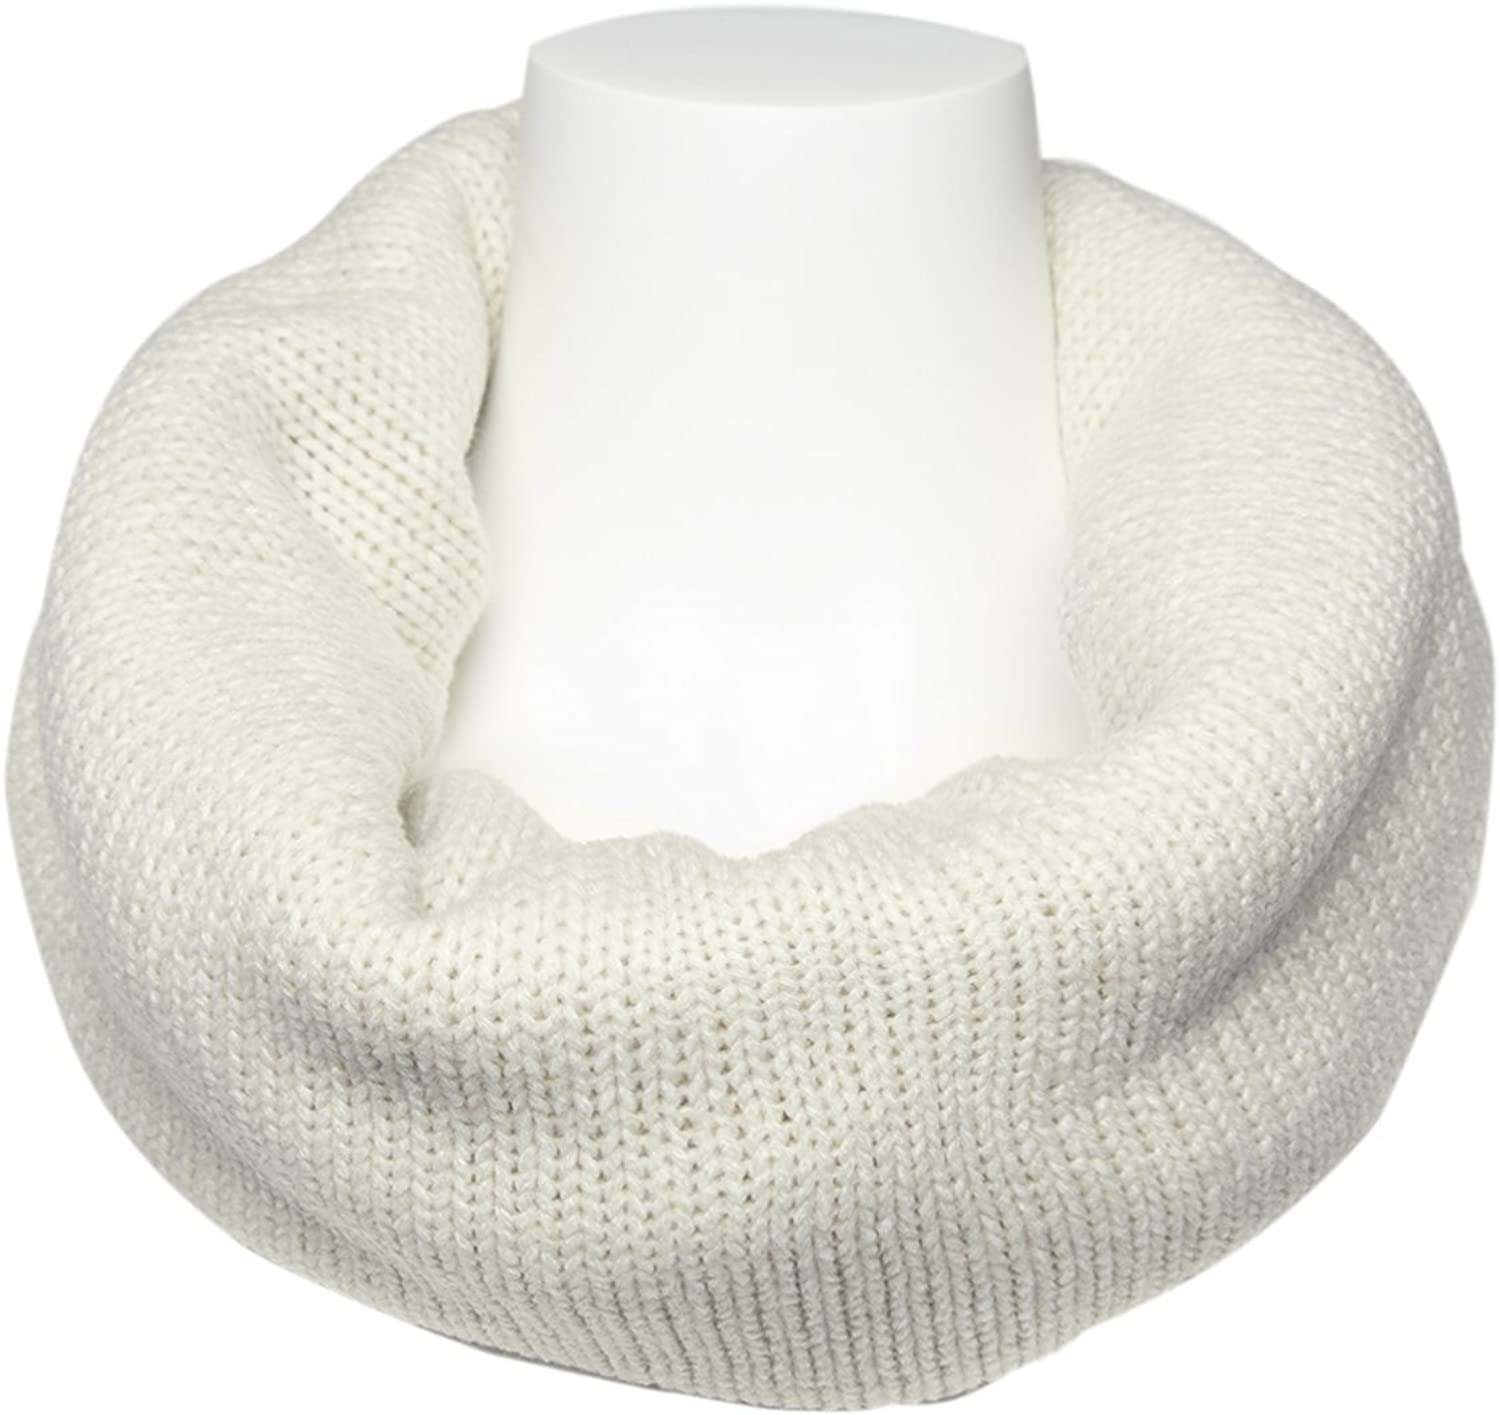 The Royal Standard Reversible Infinity Scarf Cute Winter Scarf For Women Warm Lightweight Wrap Knit Cowl